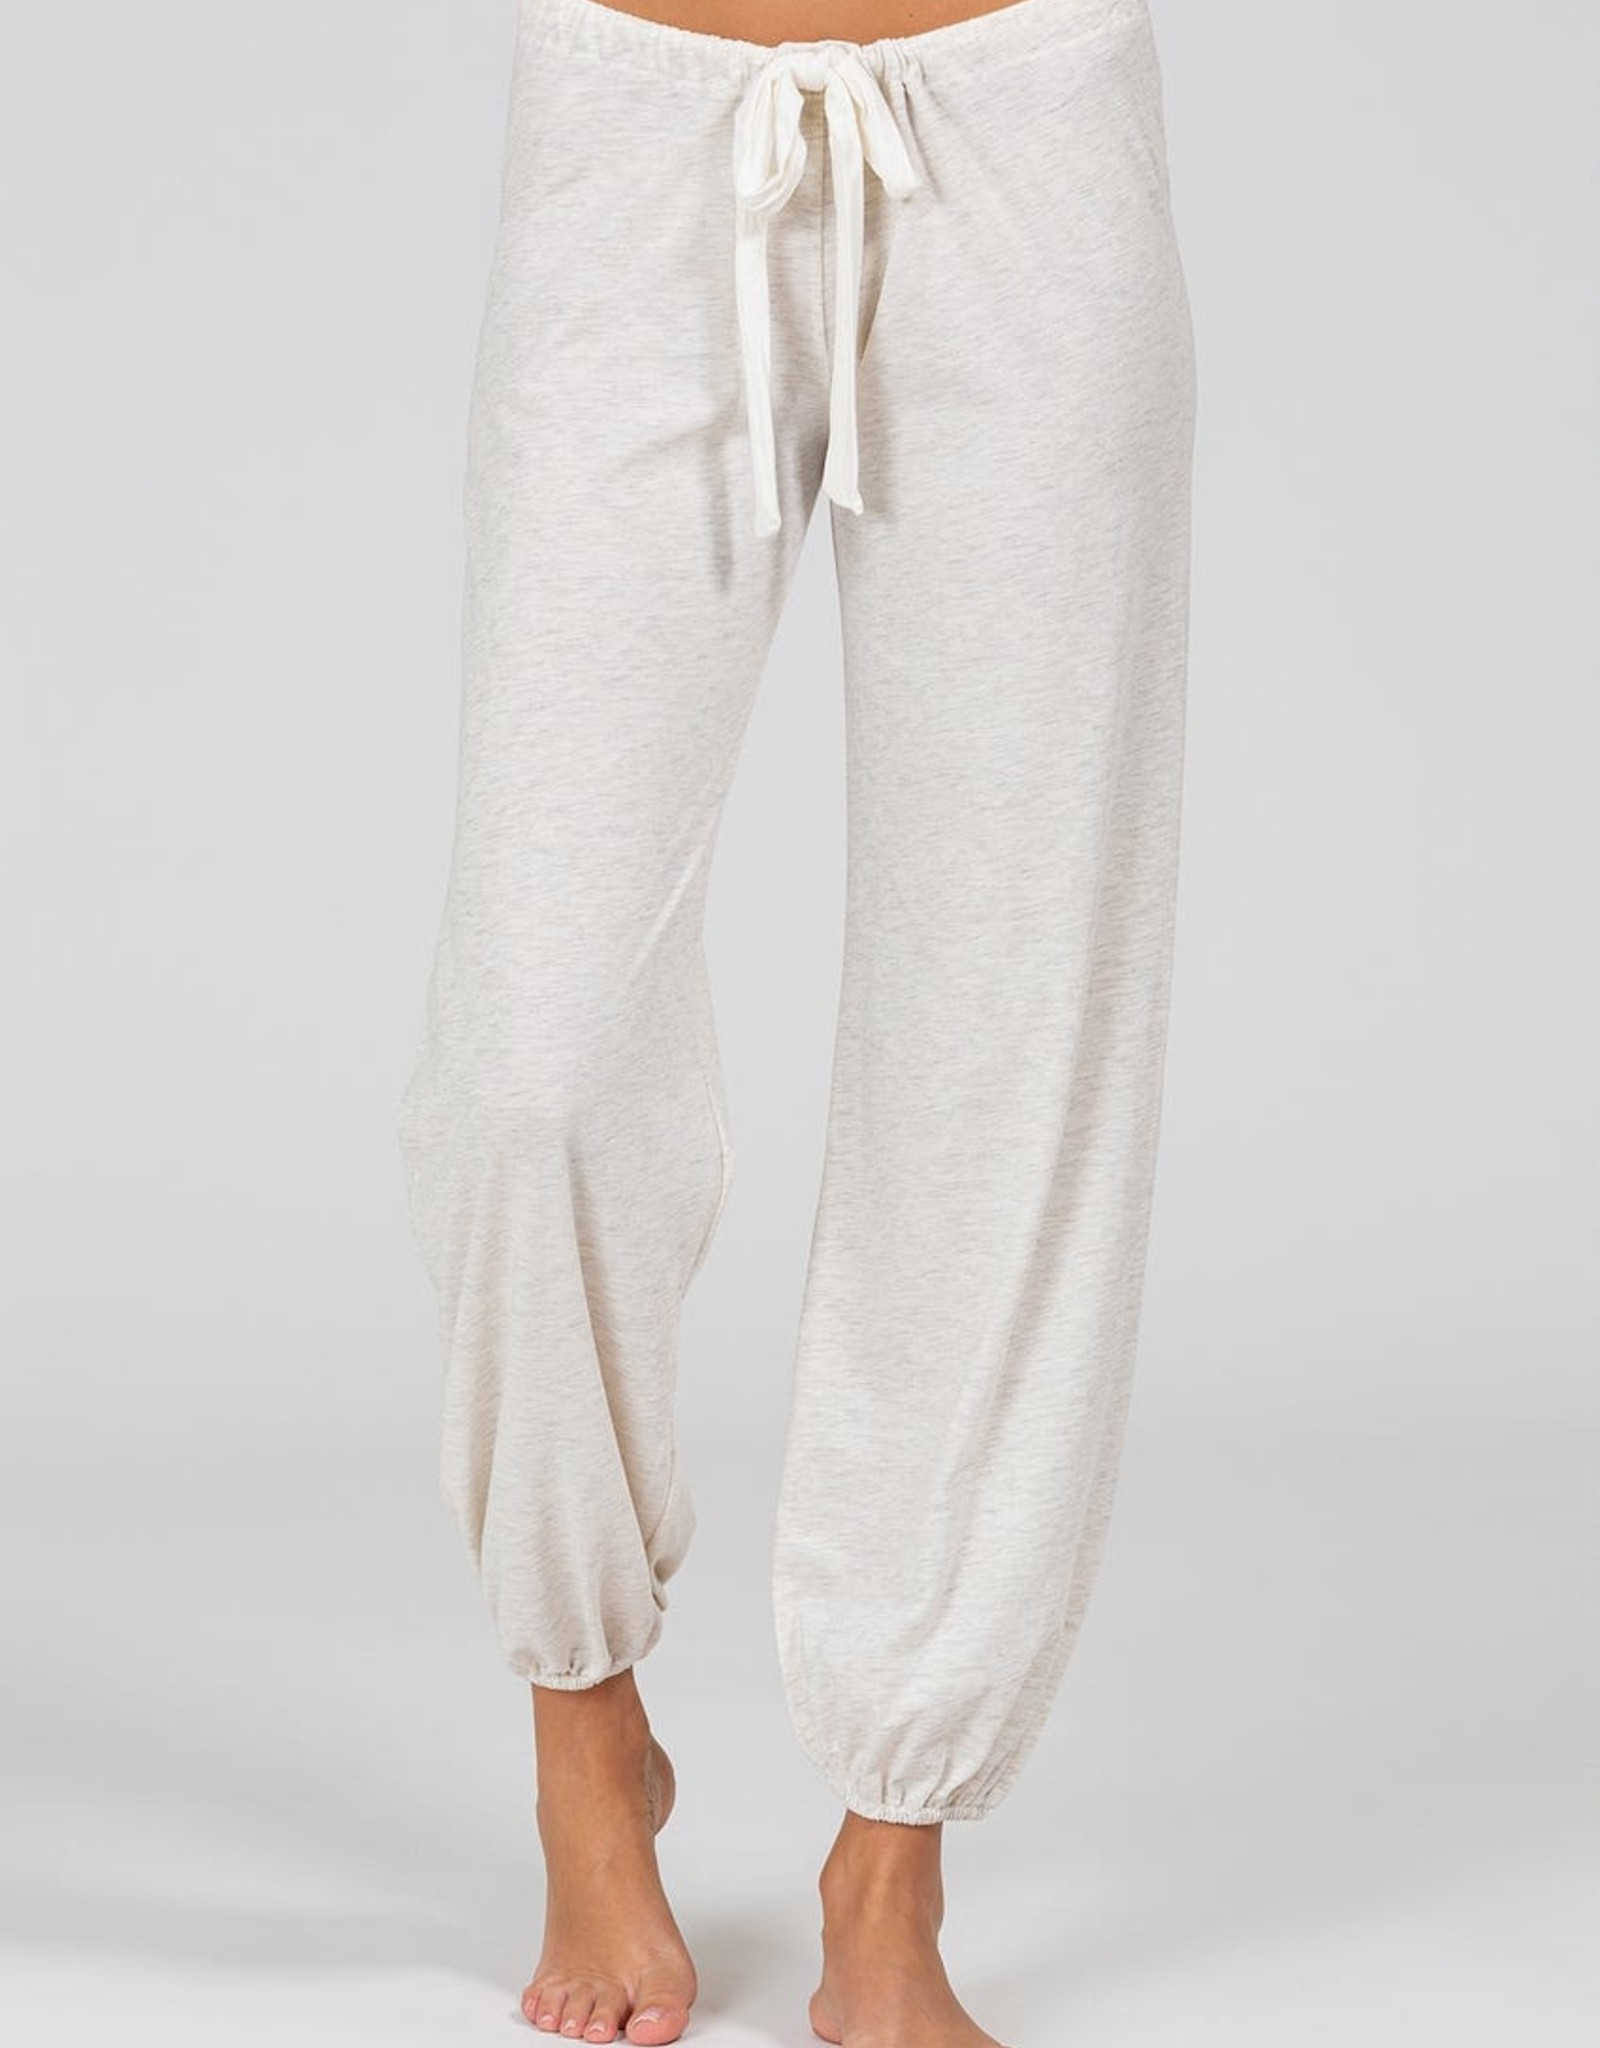 Eberjey Heather Slouchy Top & Cropped Pant Oatmeal